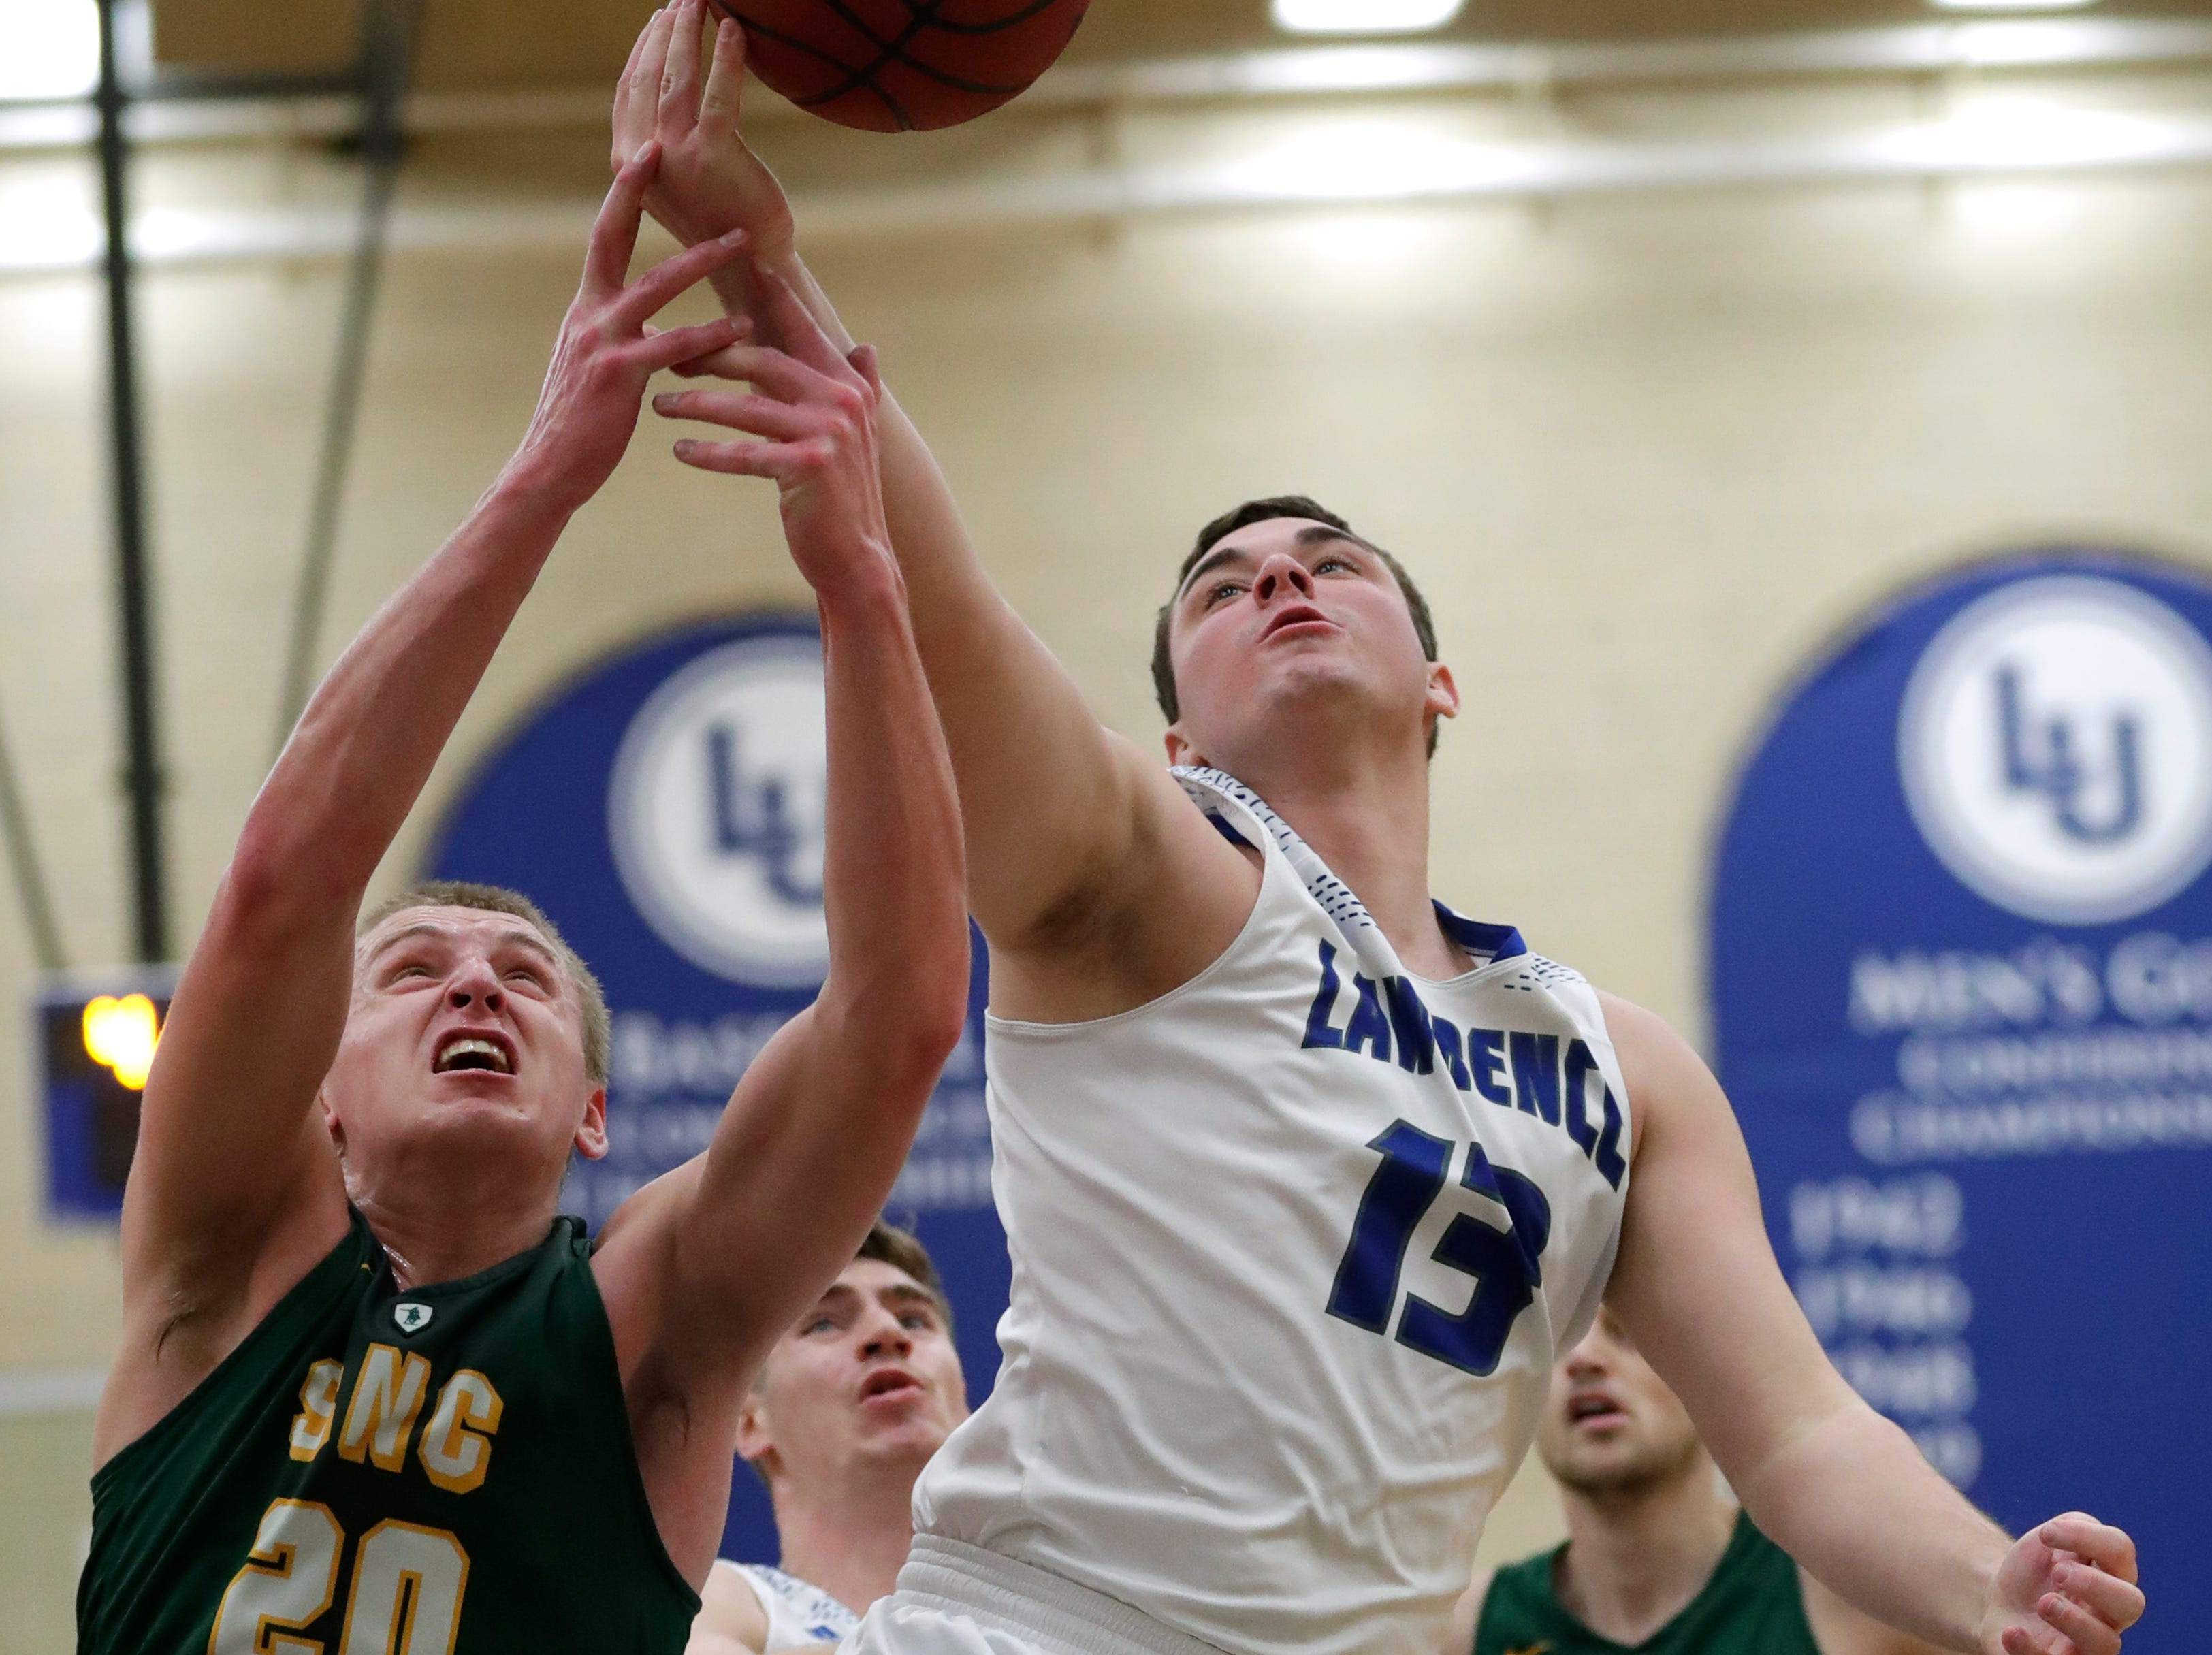 Lawrence University's Tyler Klug (13) battles for a rebound against St. Norbert College's Nolan Beirne (20) during their men's basketball game Thursday, January 31, 2019, at Alexander Gymnasium in Appleton, Wis. 